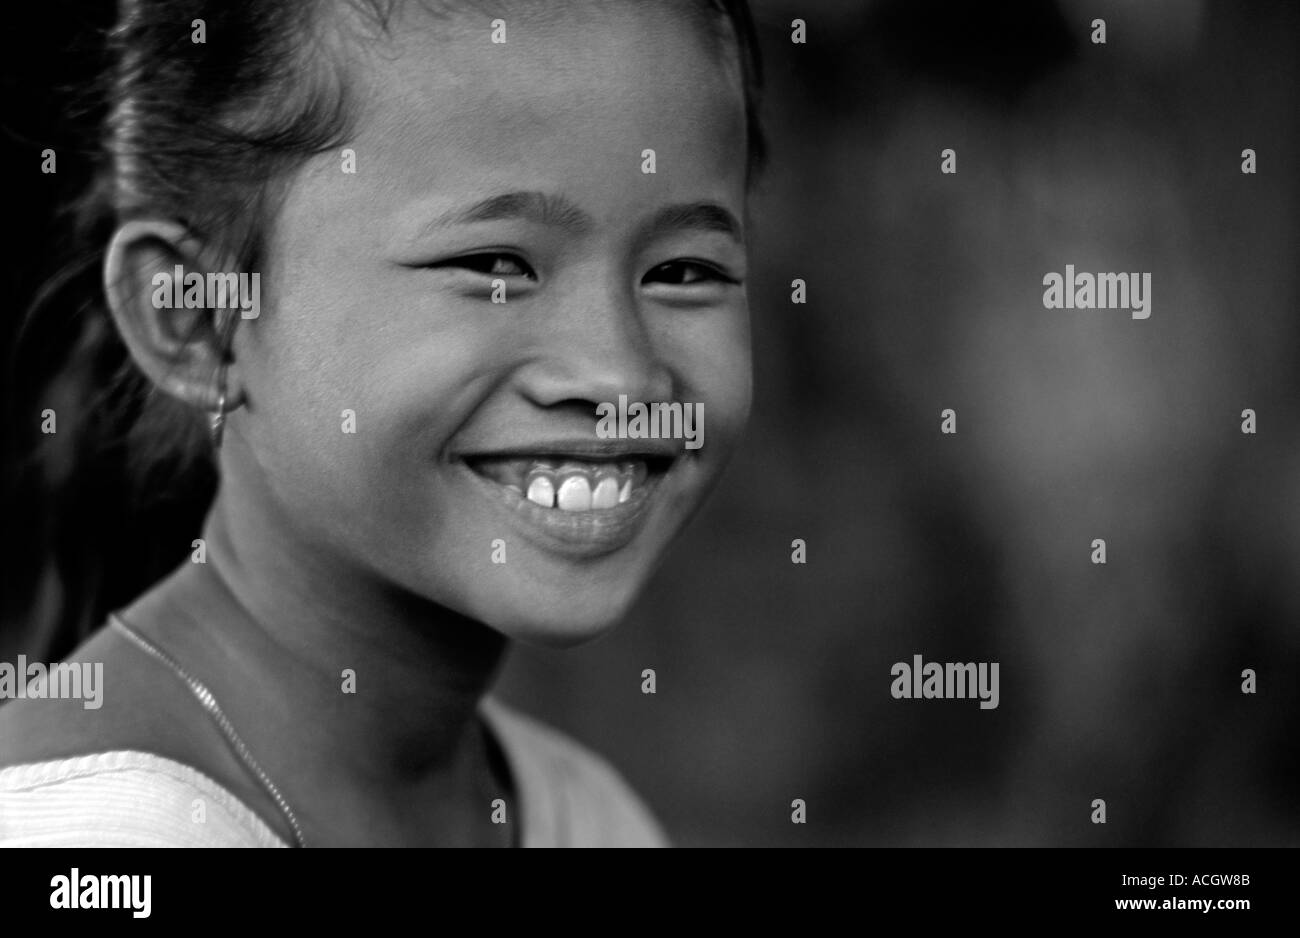 Balinese girl from the village of Amed at a community event Bali Indonesia Black and white image - Stock Image